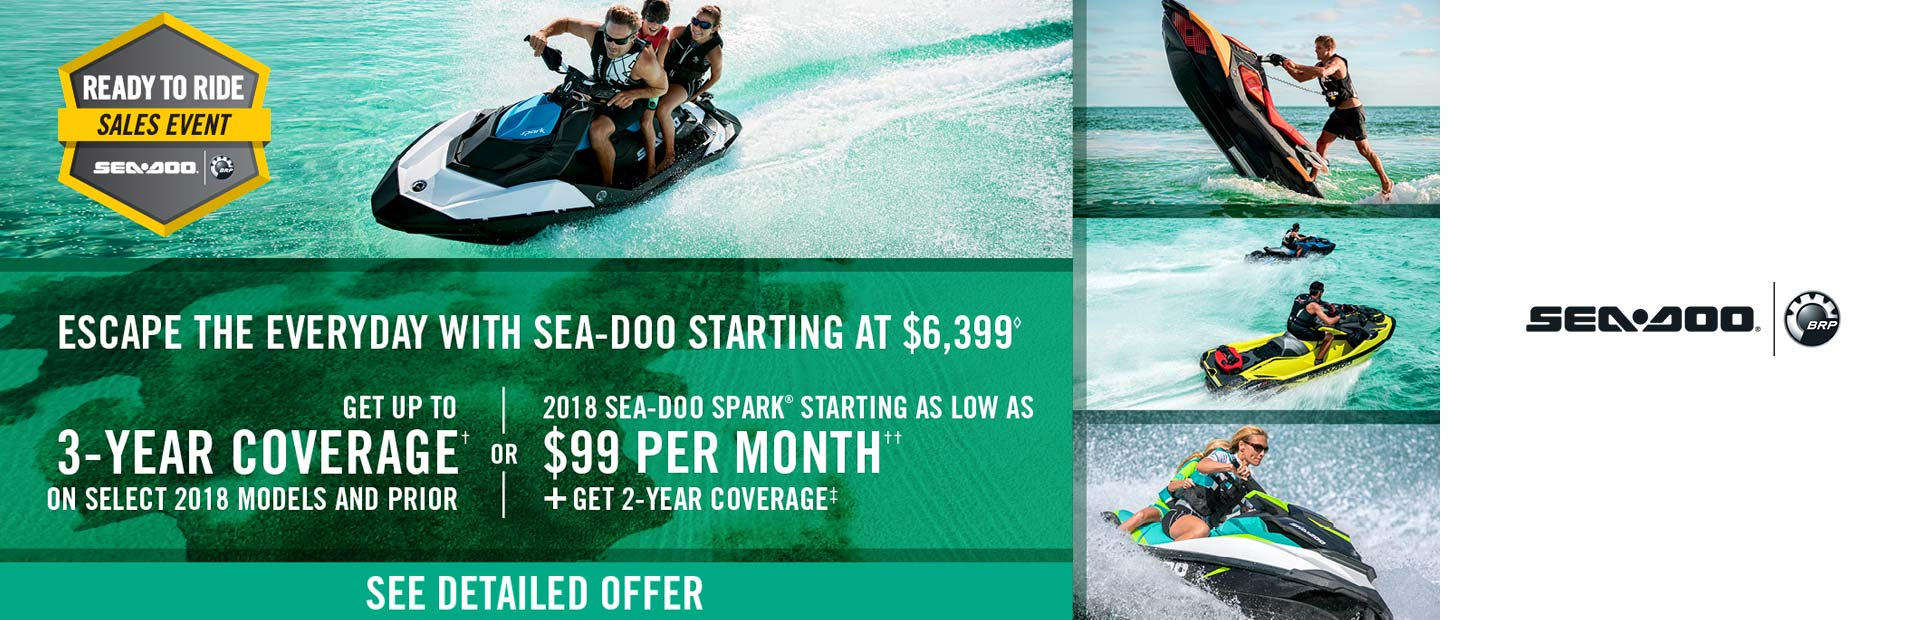 Sea-Doo: Ready to Ride Sales Event